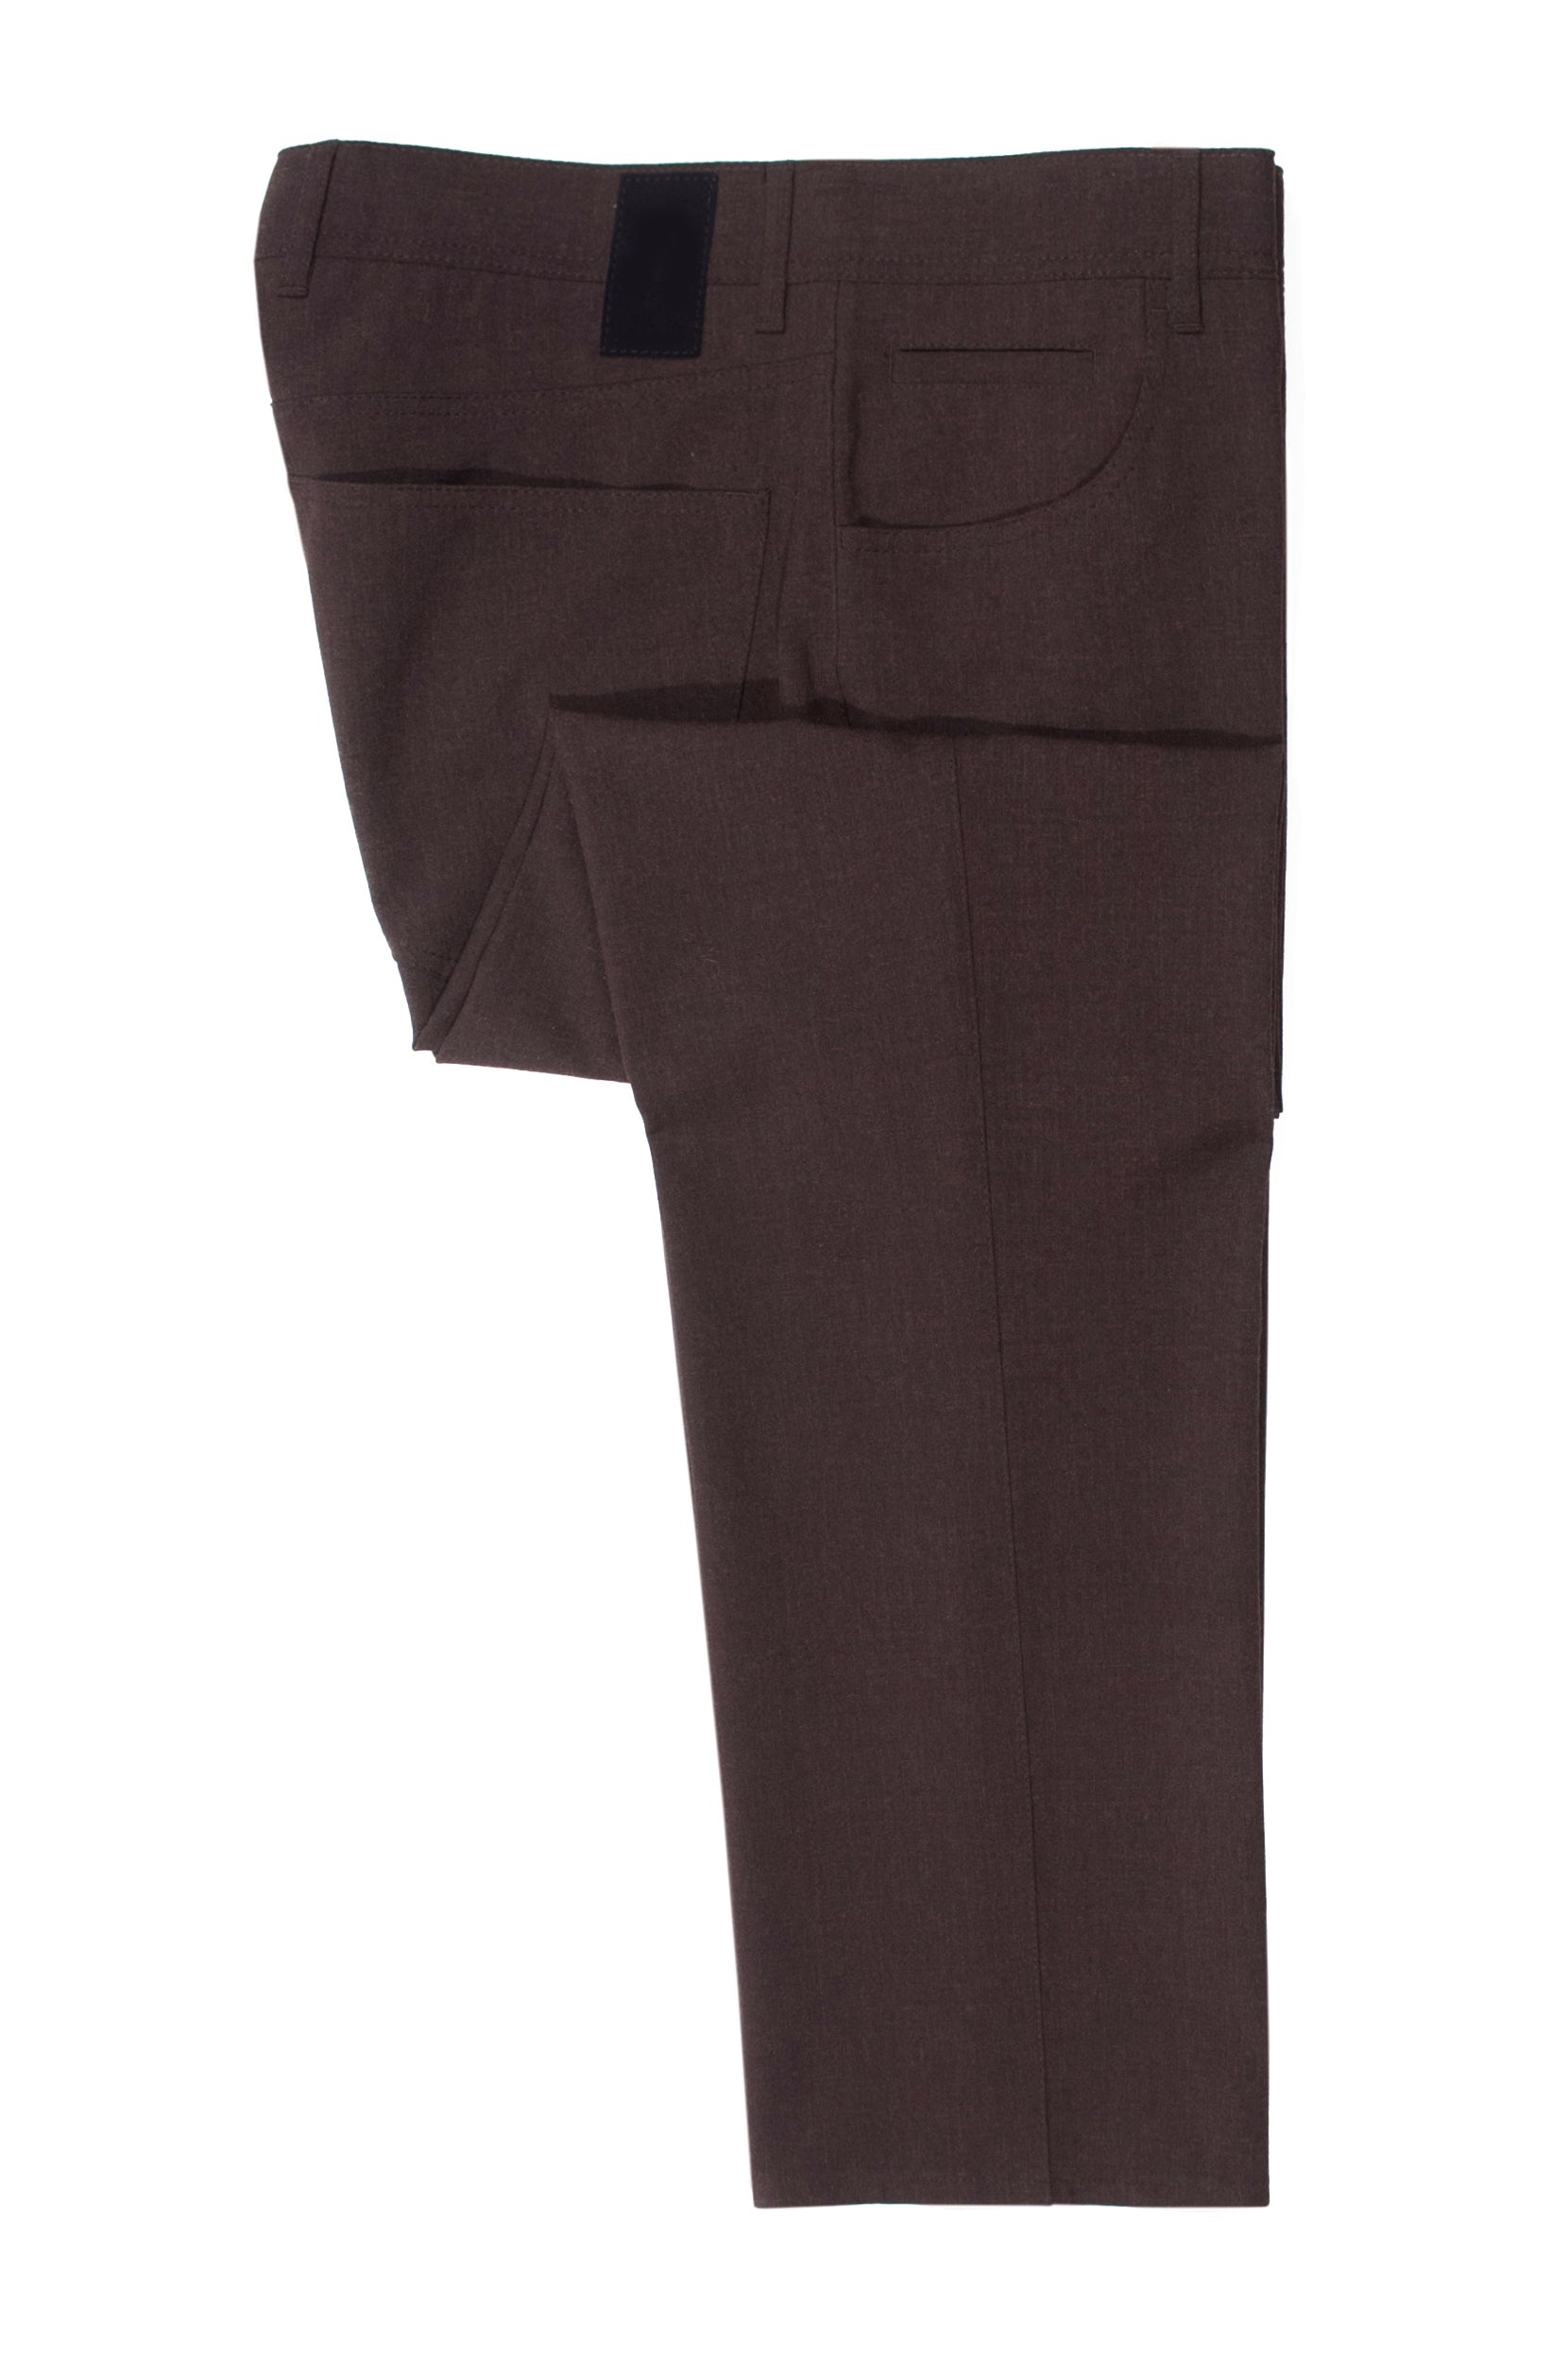 Alberto Dark Brown Stone Modern Fit Ceramica Pants for Luxmrkt.com Menswear Consignment Edmonton